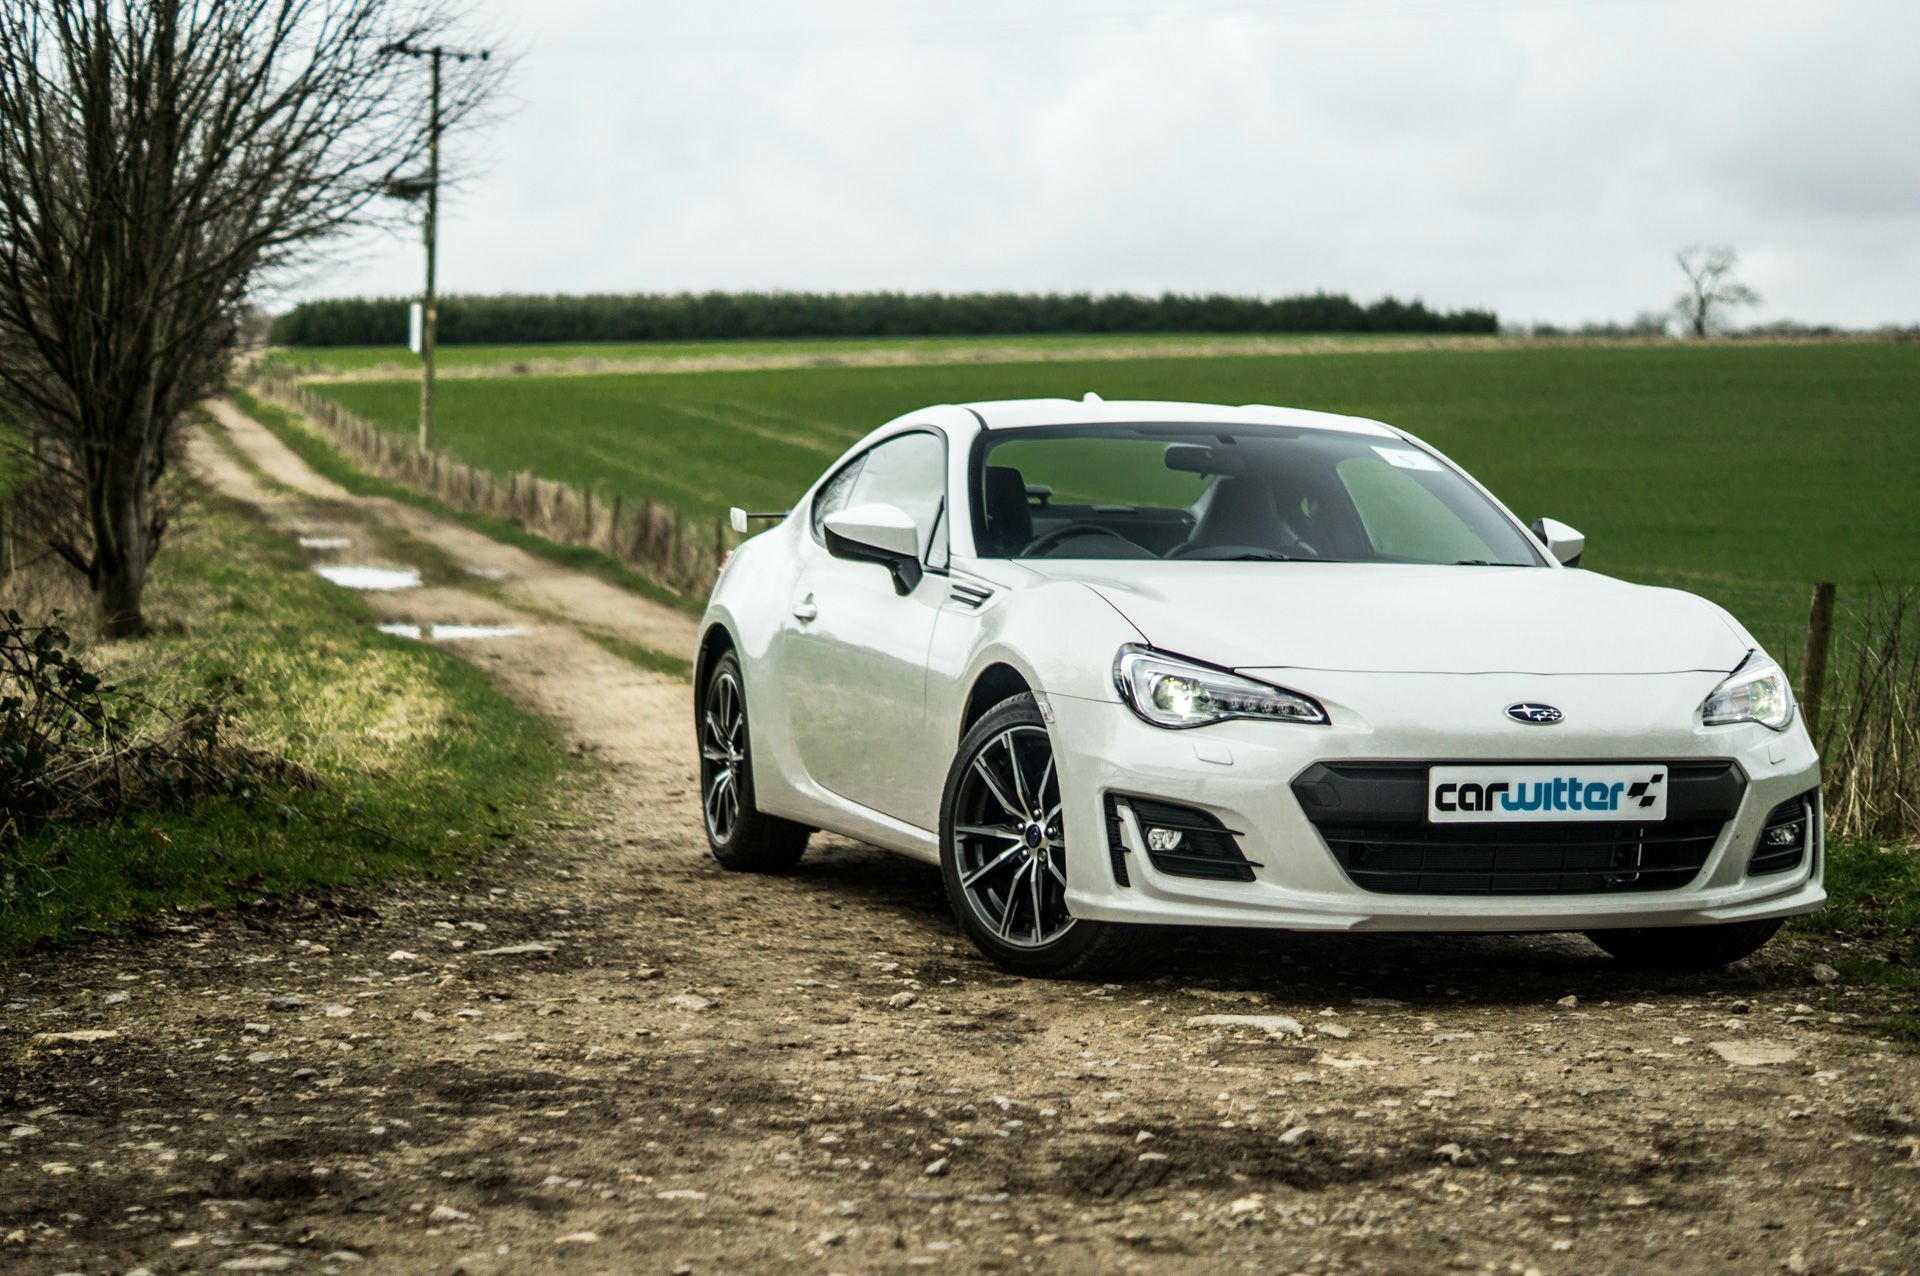 2017 Subaru Brz Review Front Low Carwitter 1024x681 Uk